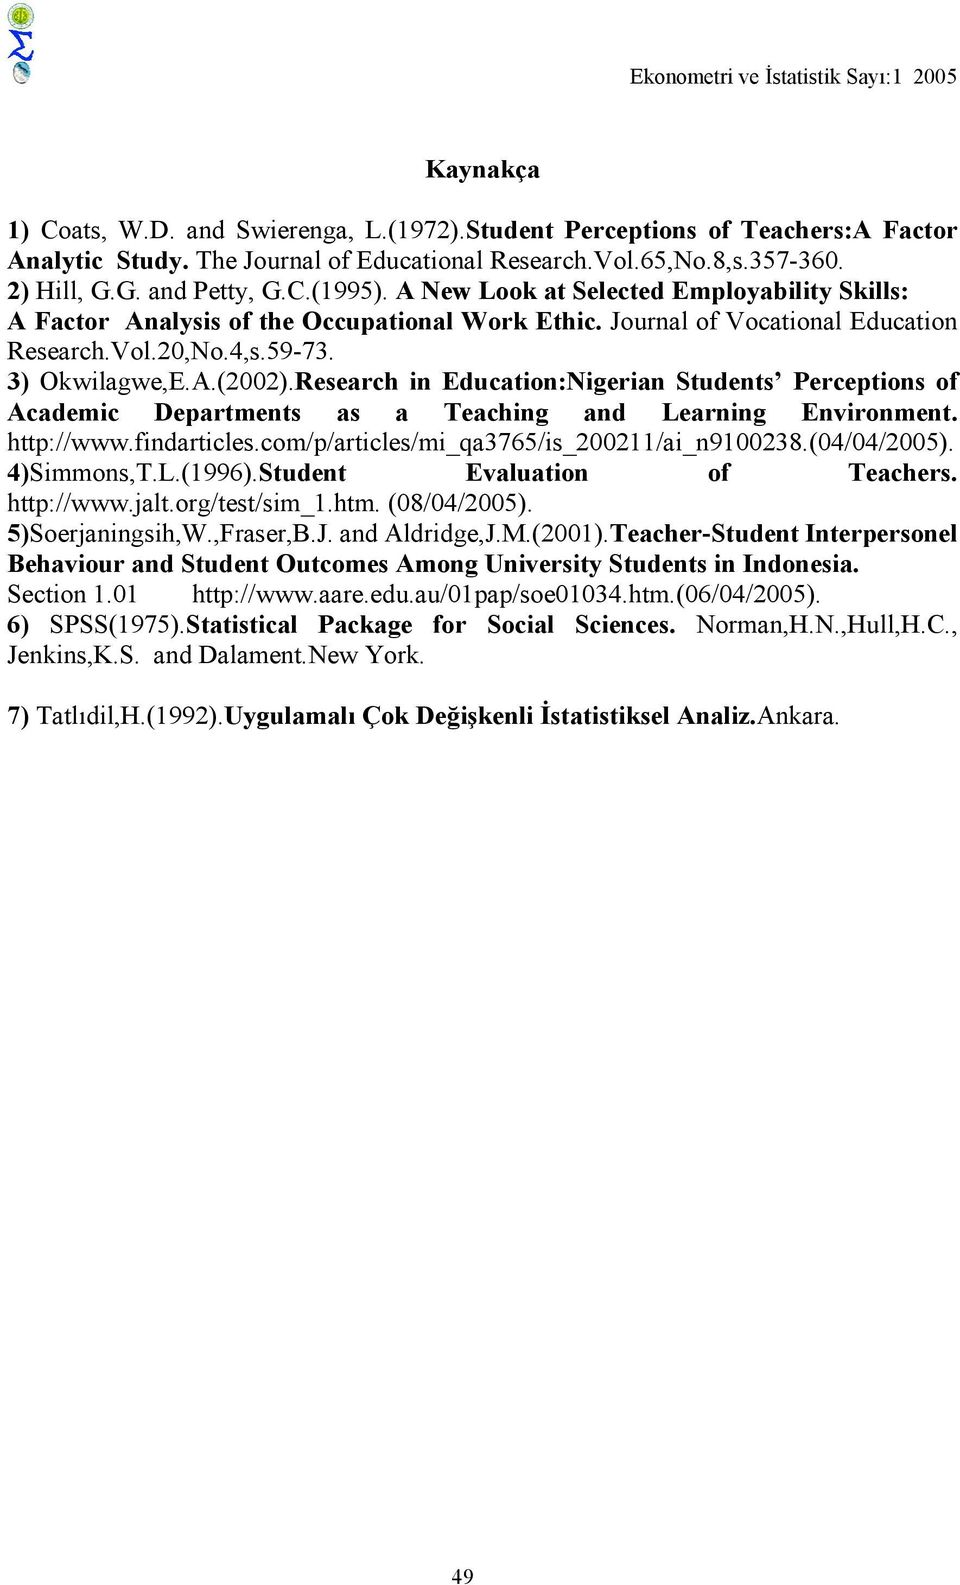 3) Okwilagwe,E.A.(2002).Research in Education:Nigerian Students Perceptions of Academic Departments as a Teaching and Learning Environment. http://www.findarticles.